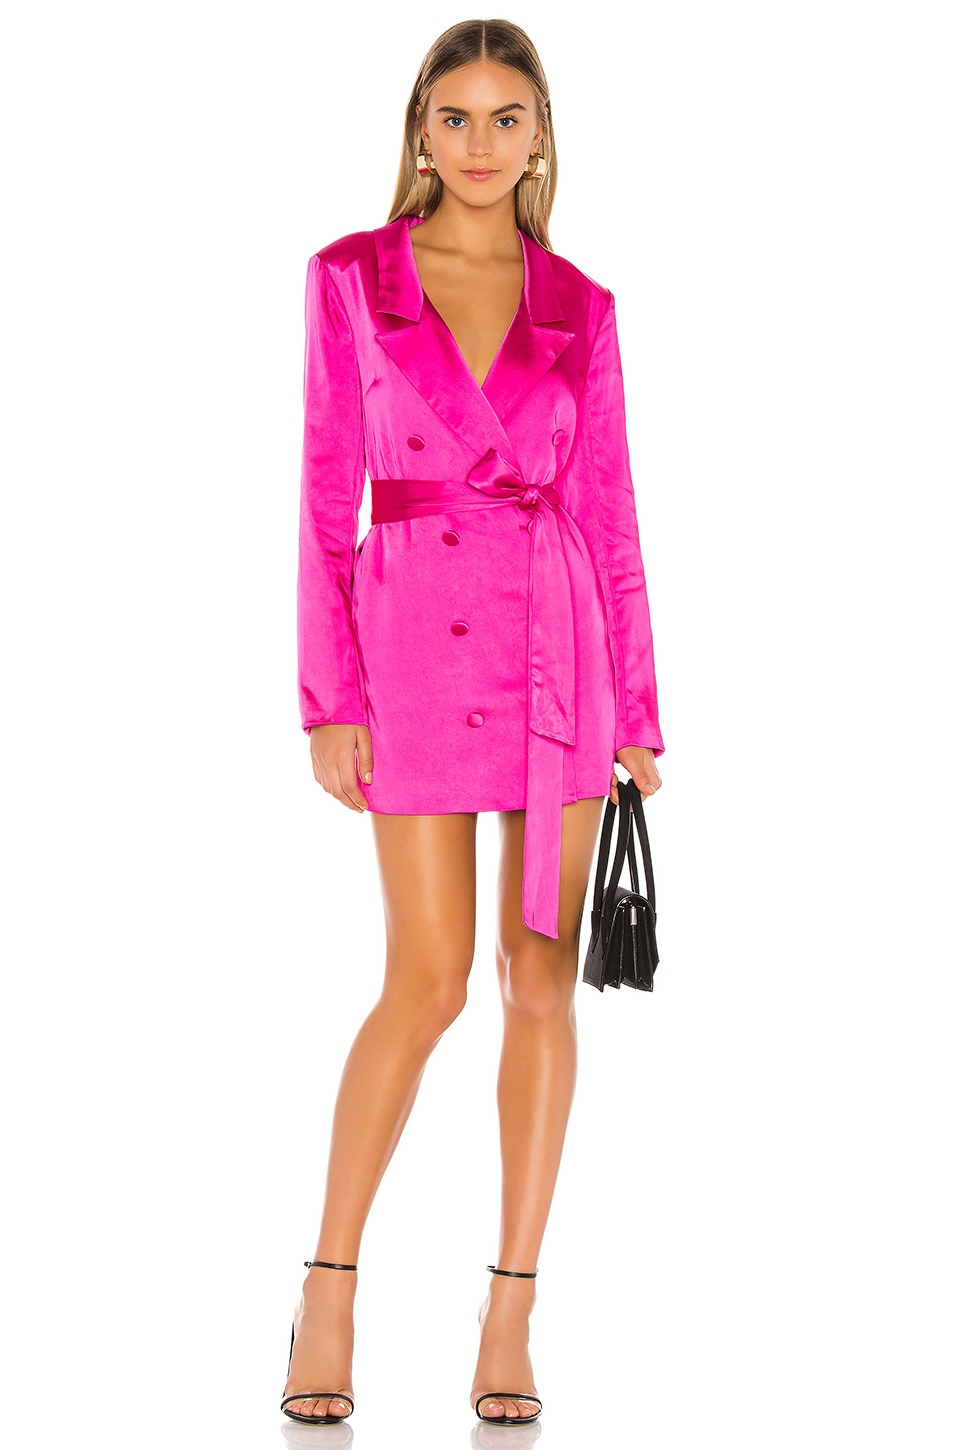 Lovers + Friends Kimber Blazer Dress in Magenta Pink